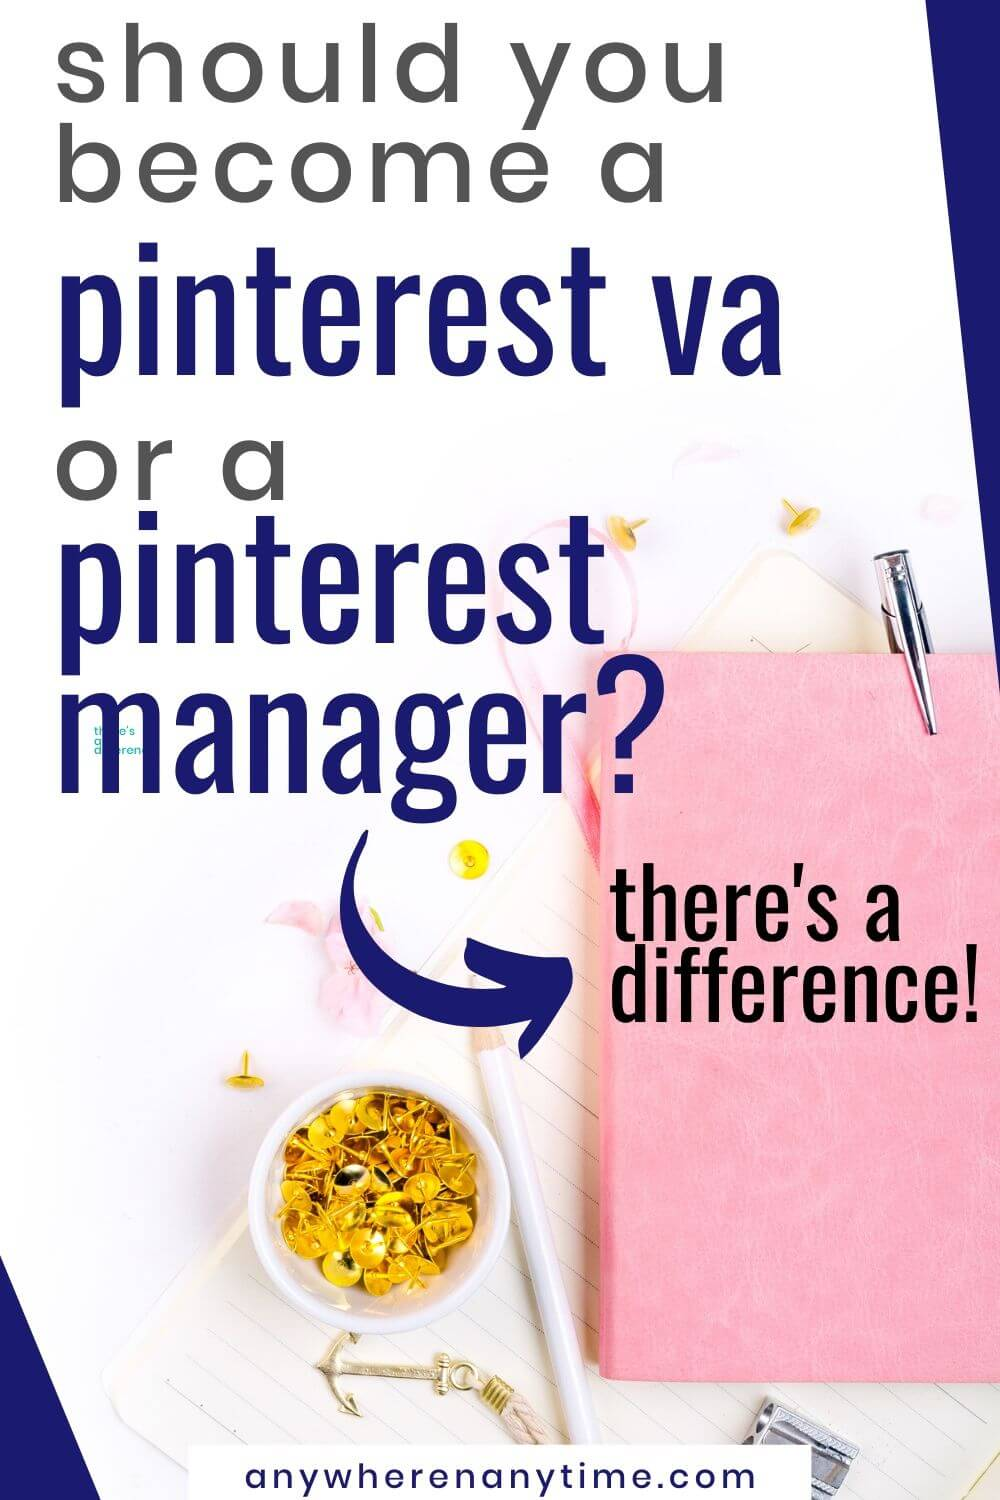 Should you become a pinterest va or a pinterest manager - there's a difference.